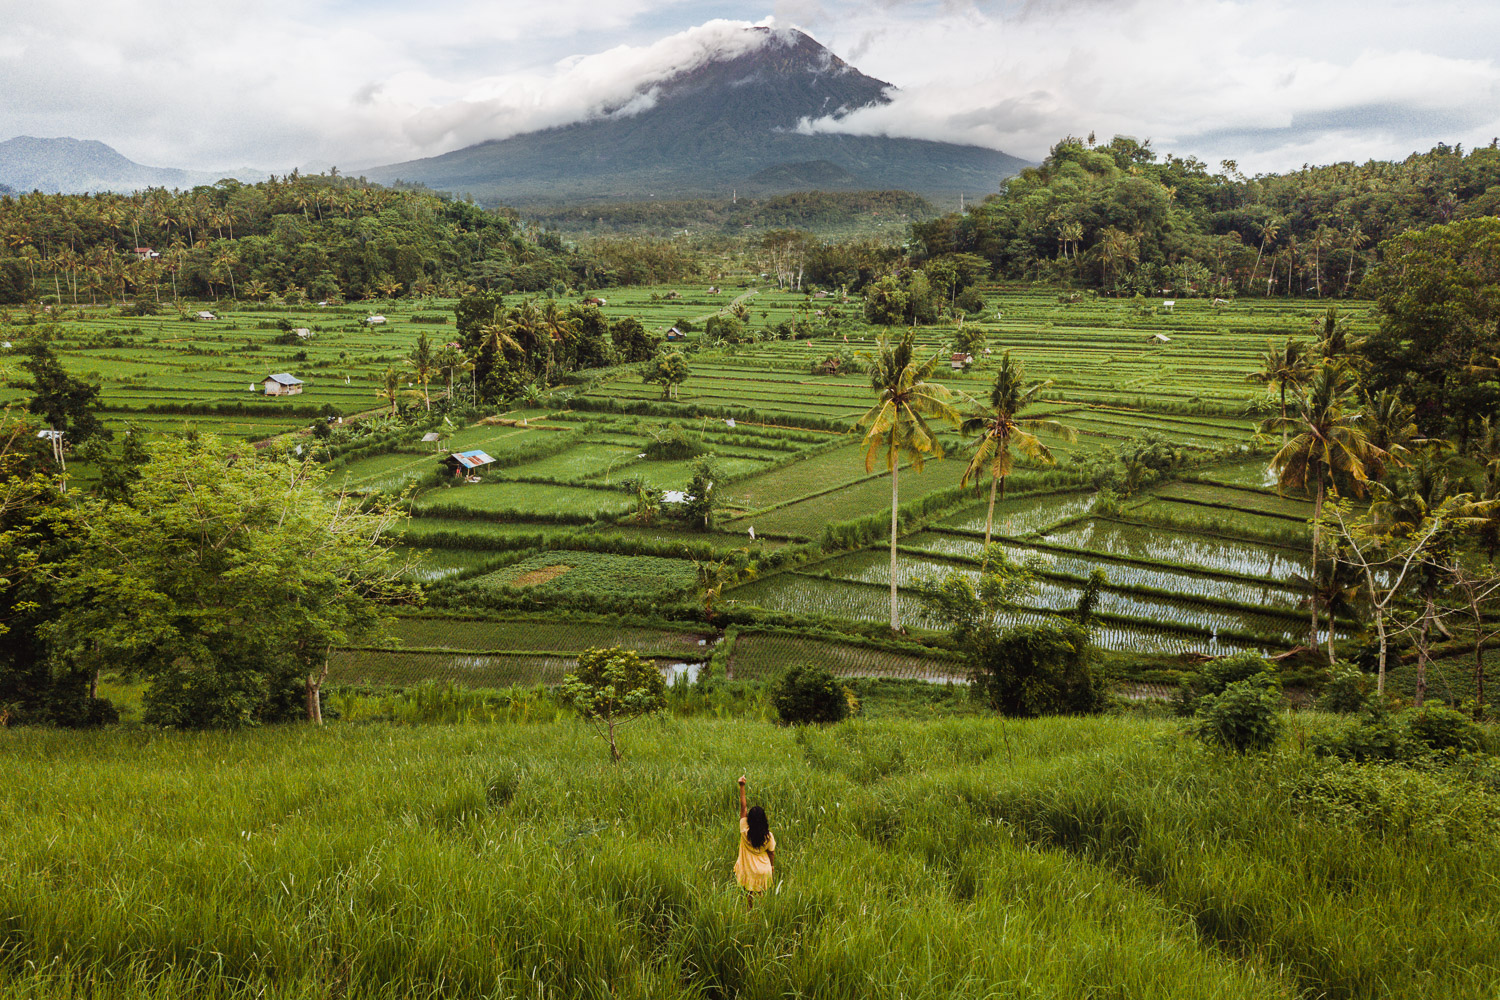 BUKIT CINTA: Bali's Best Sunrise Viewpoint